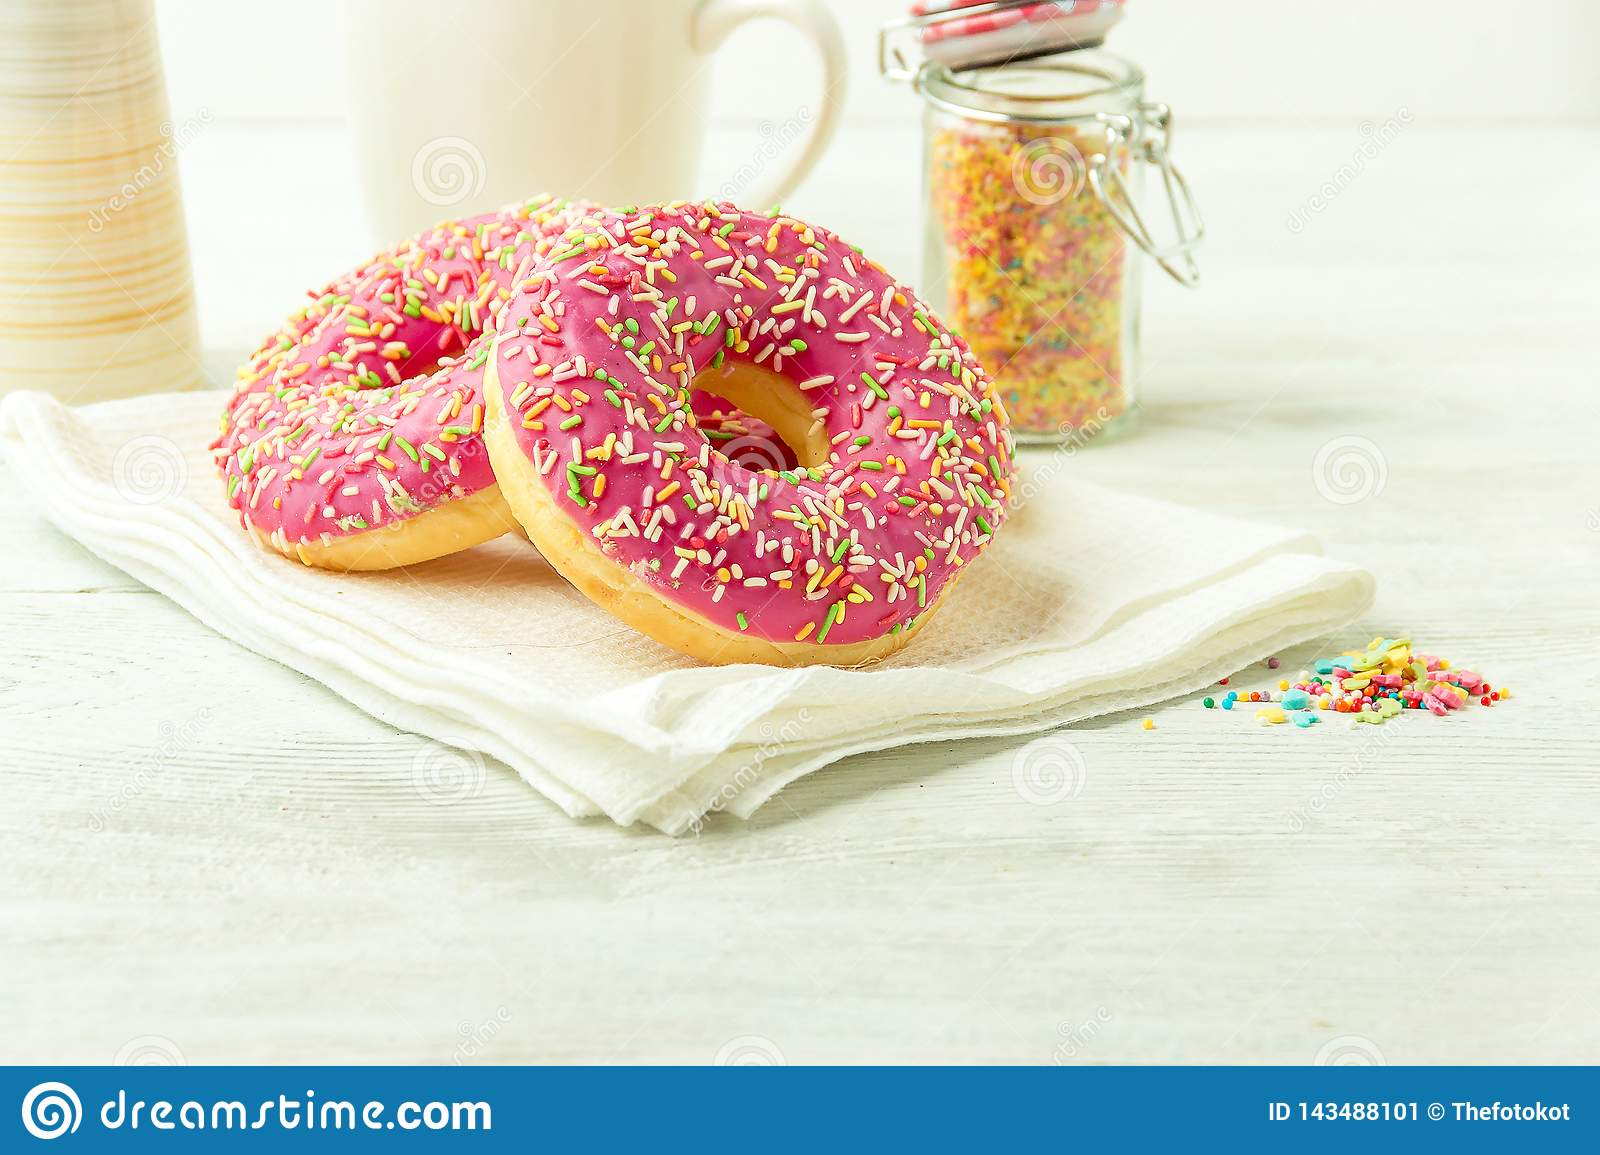 Donut On A Kitchen Towel And On A Wooden Table Photo Of Sweets With Copyspace Stock Image Image Of Food Confectionery 143488101